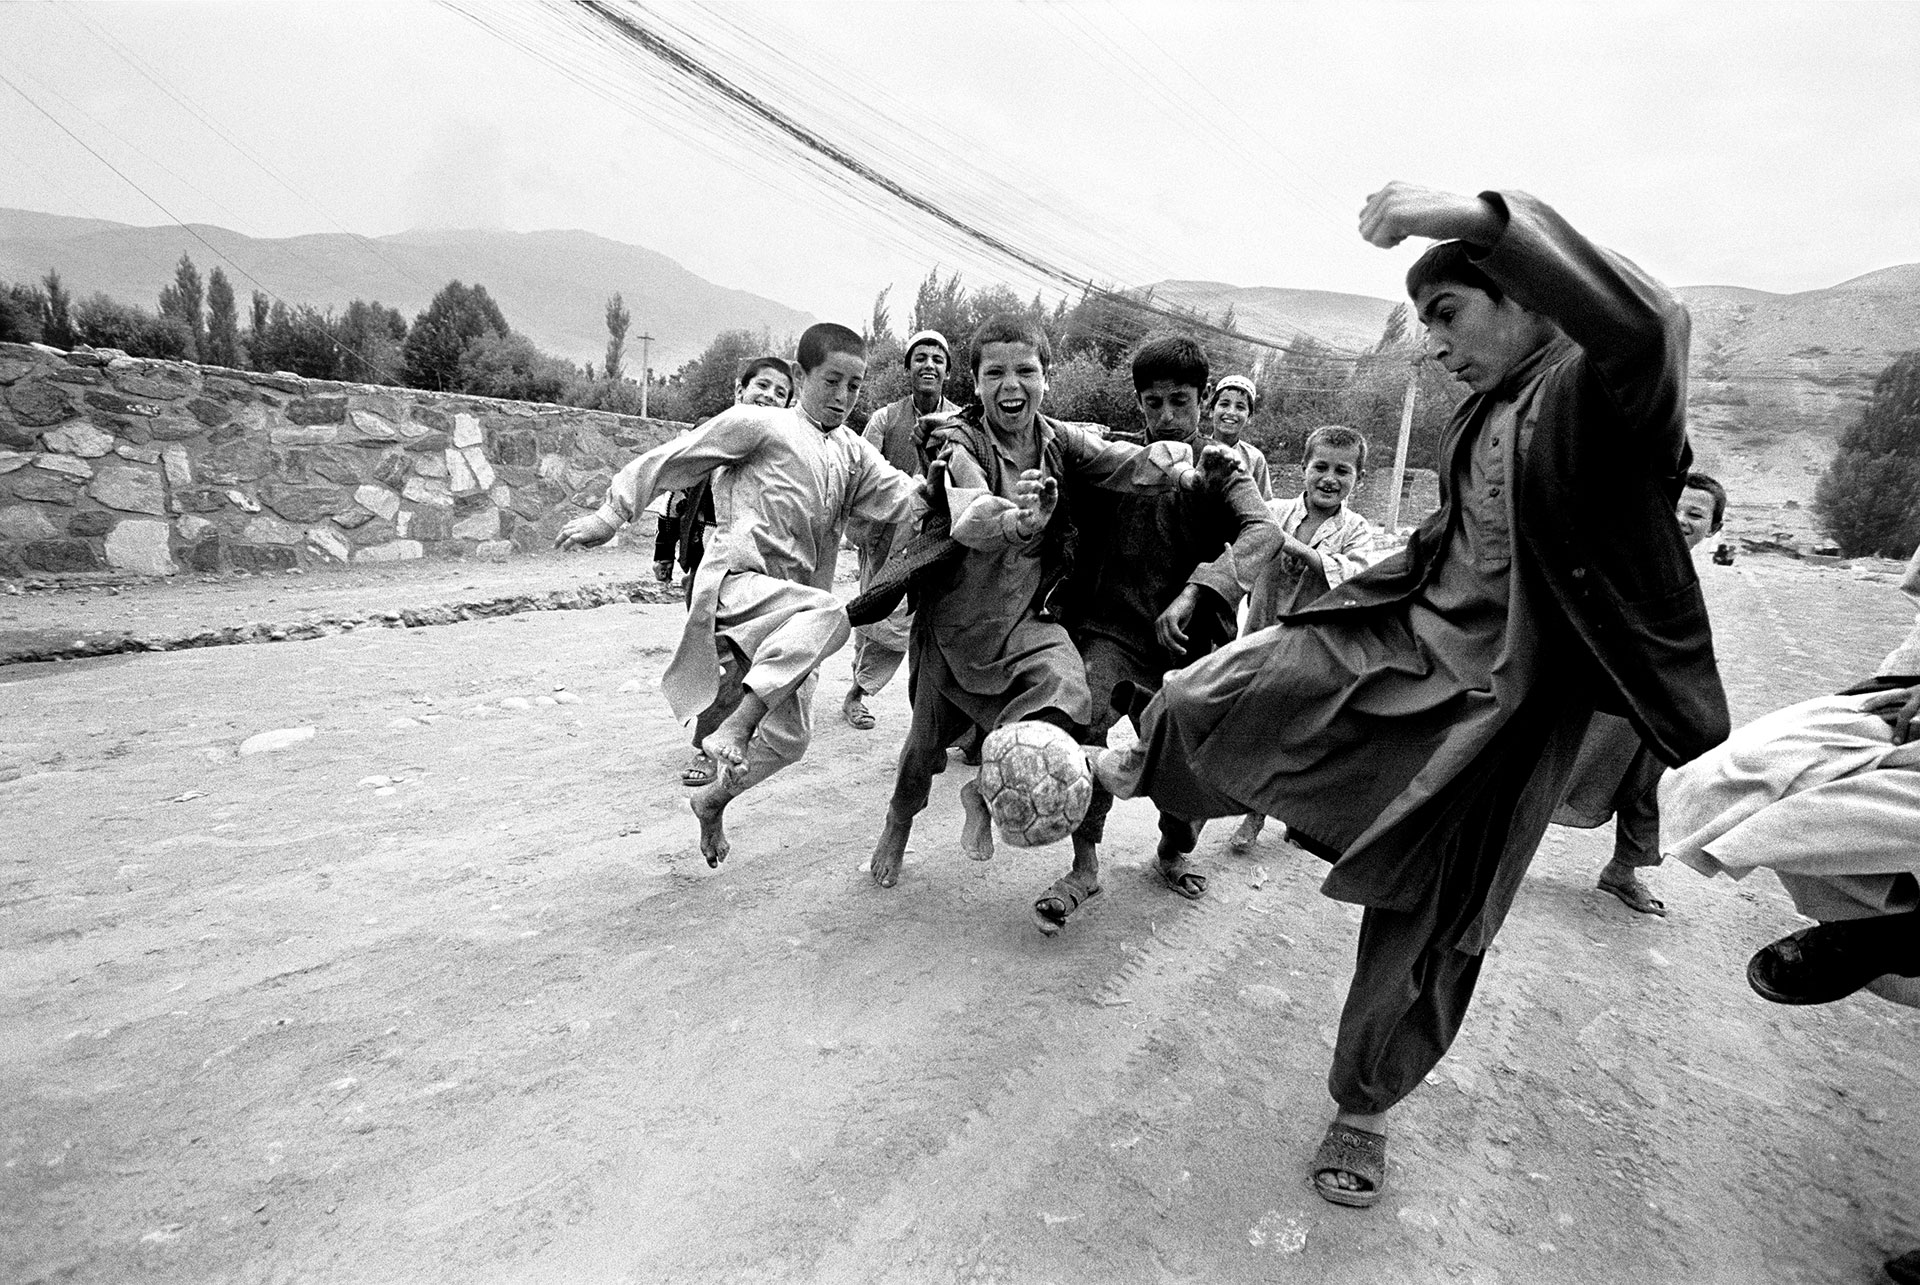 Jason Florio photography - black and white image of a group of you boys kicking around a deflated football (Soccer ball), in a rural street, Afghanistan